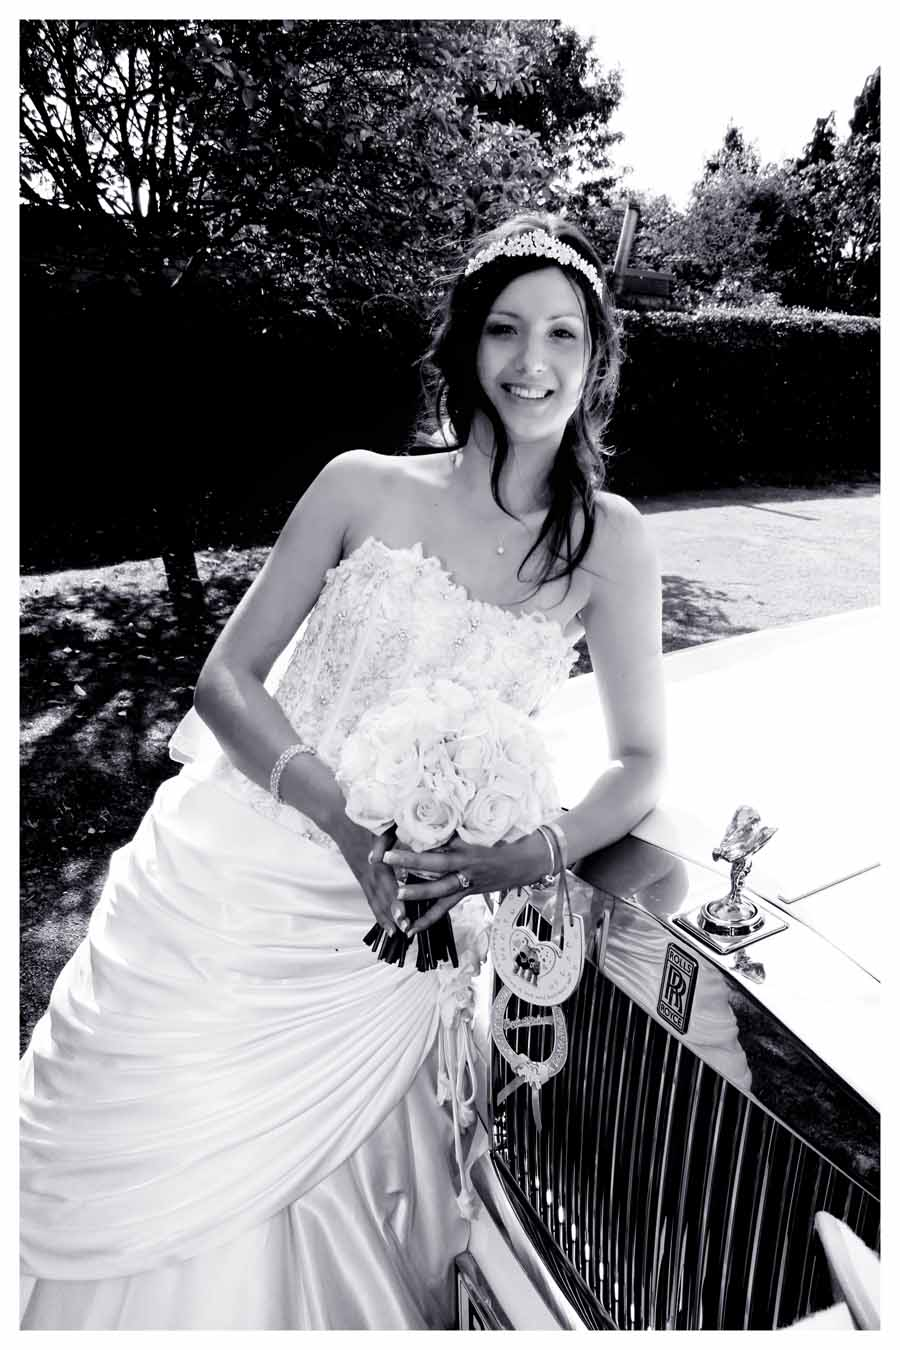 BRIDE Photos by Simeon Thaw copyright 2014 (92).jpg